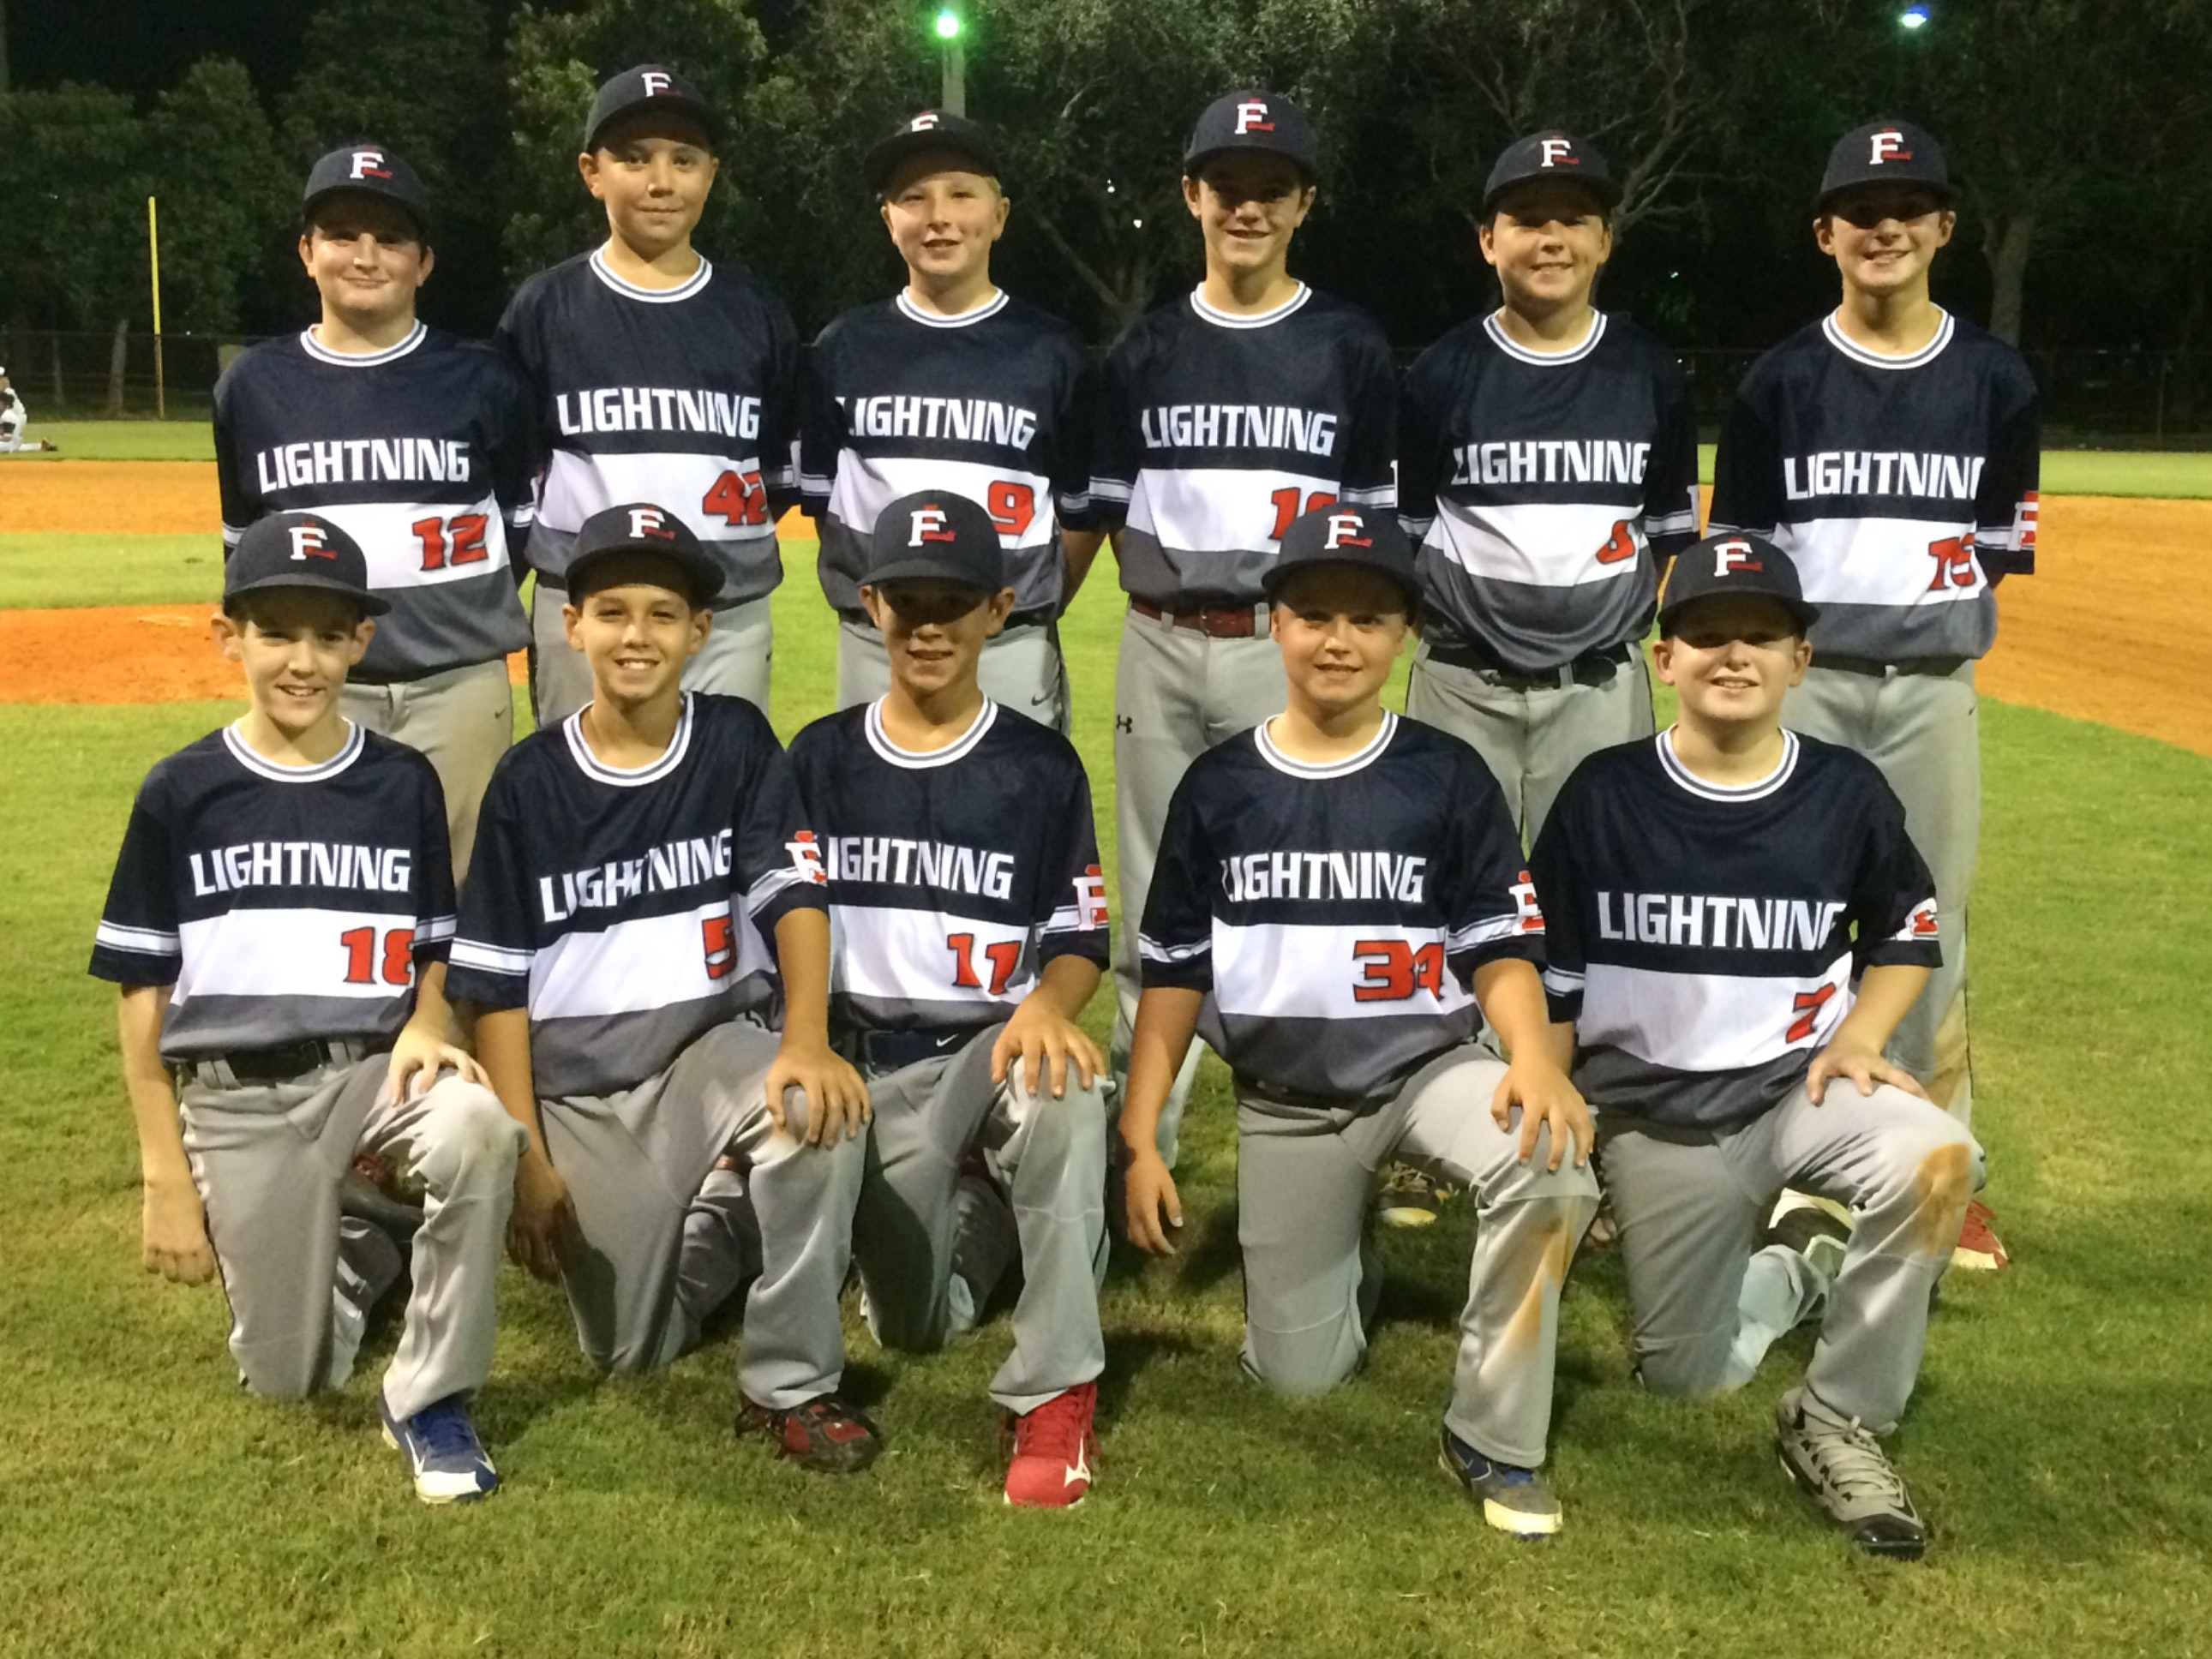 Fort Lauderdale 12U Lightning